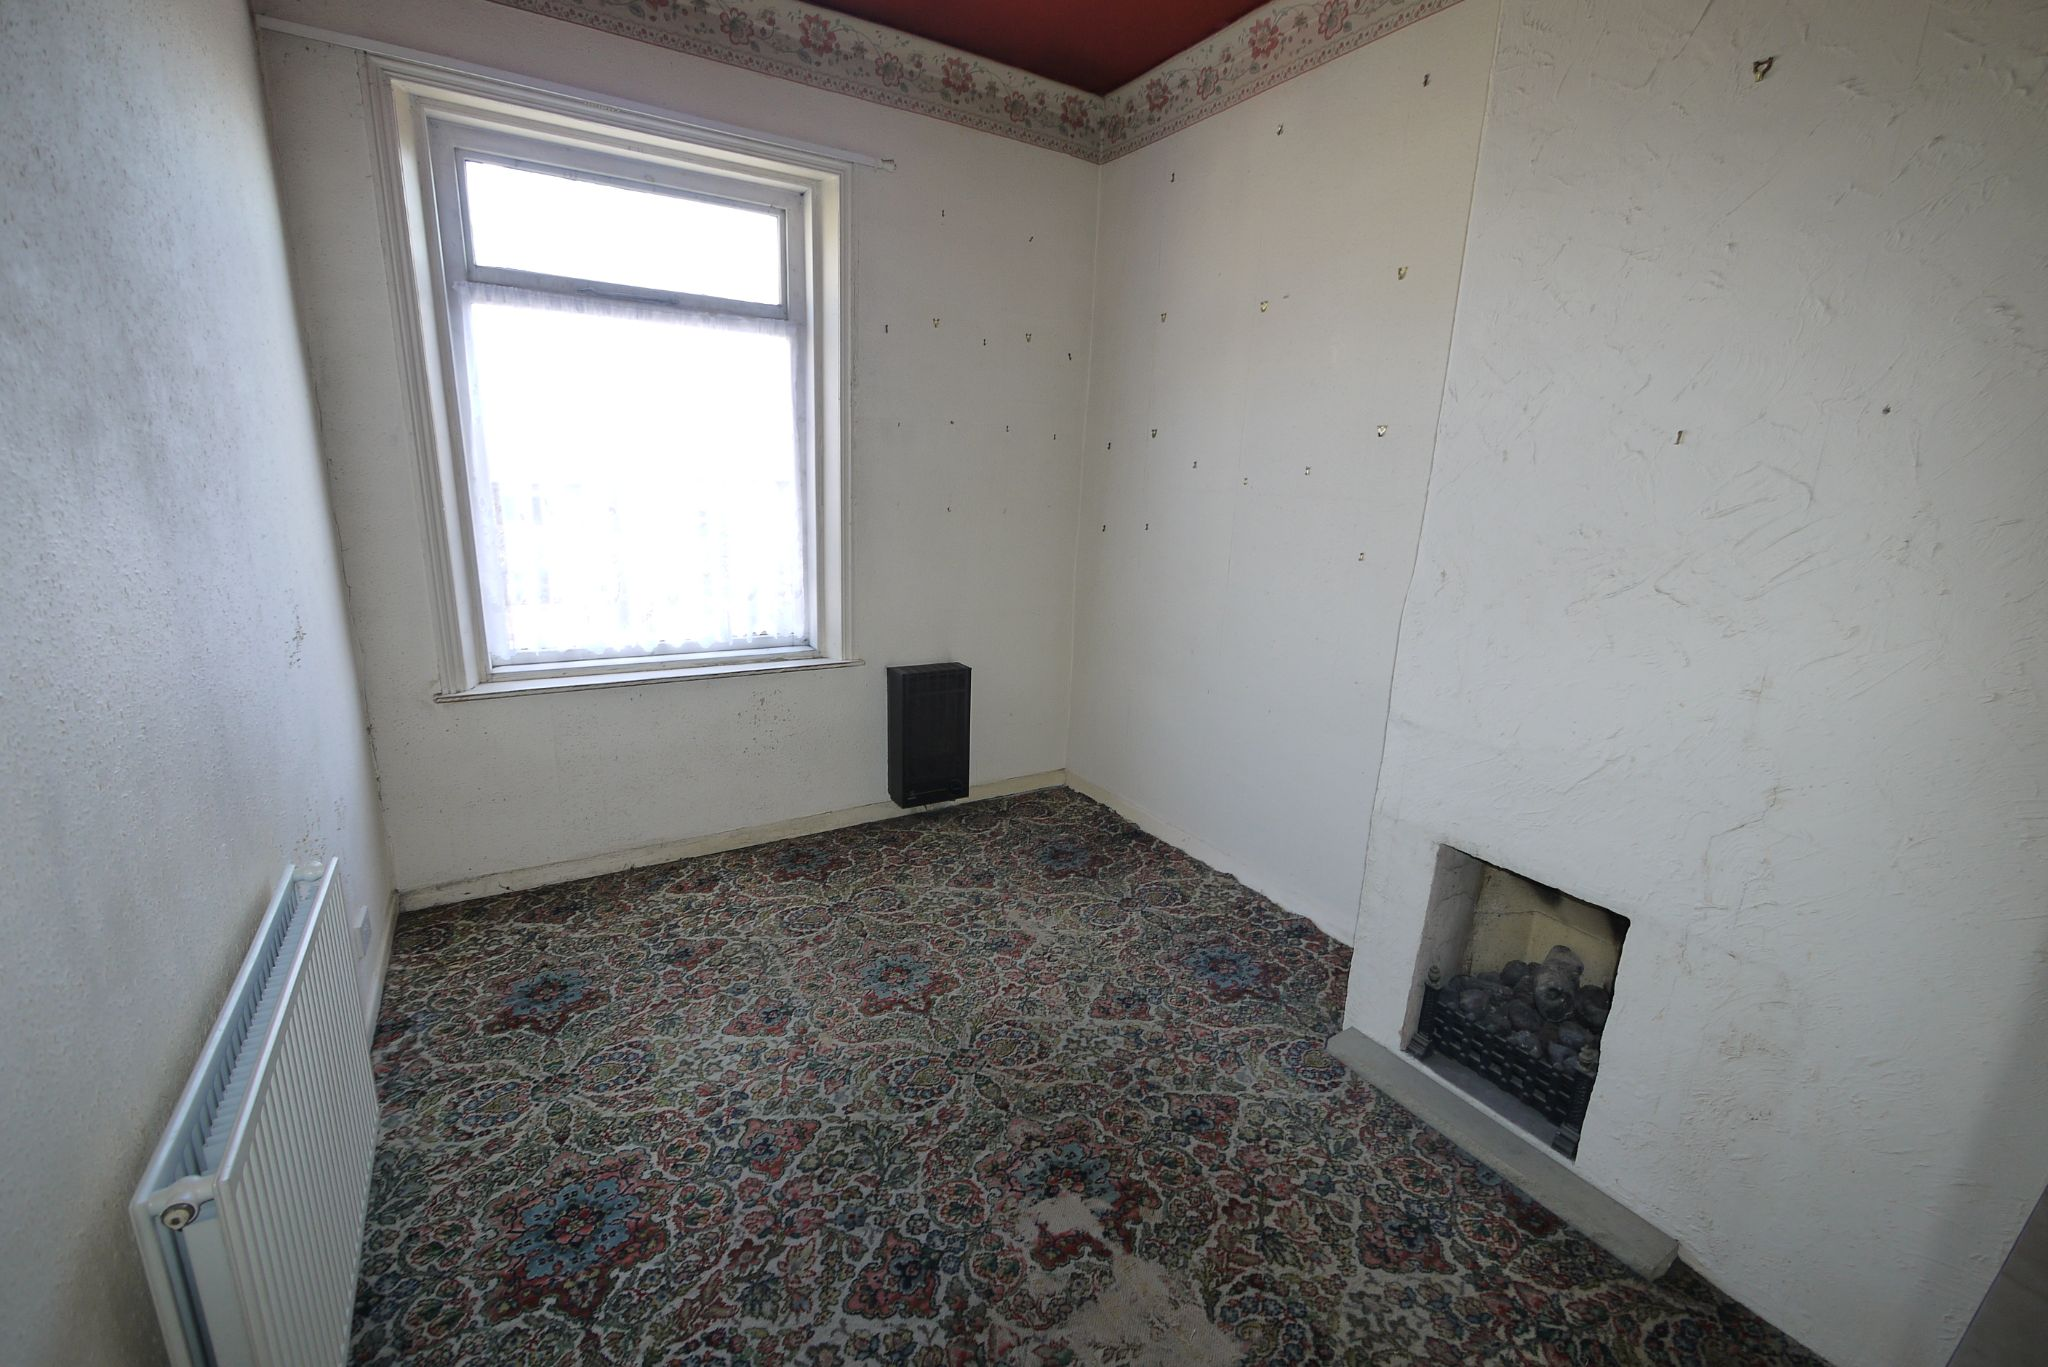 1 bedroom end terraced house SSTC in Brighouse - Room FF.